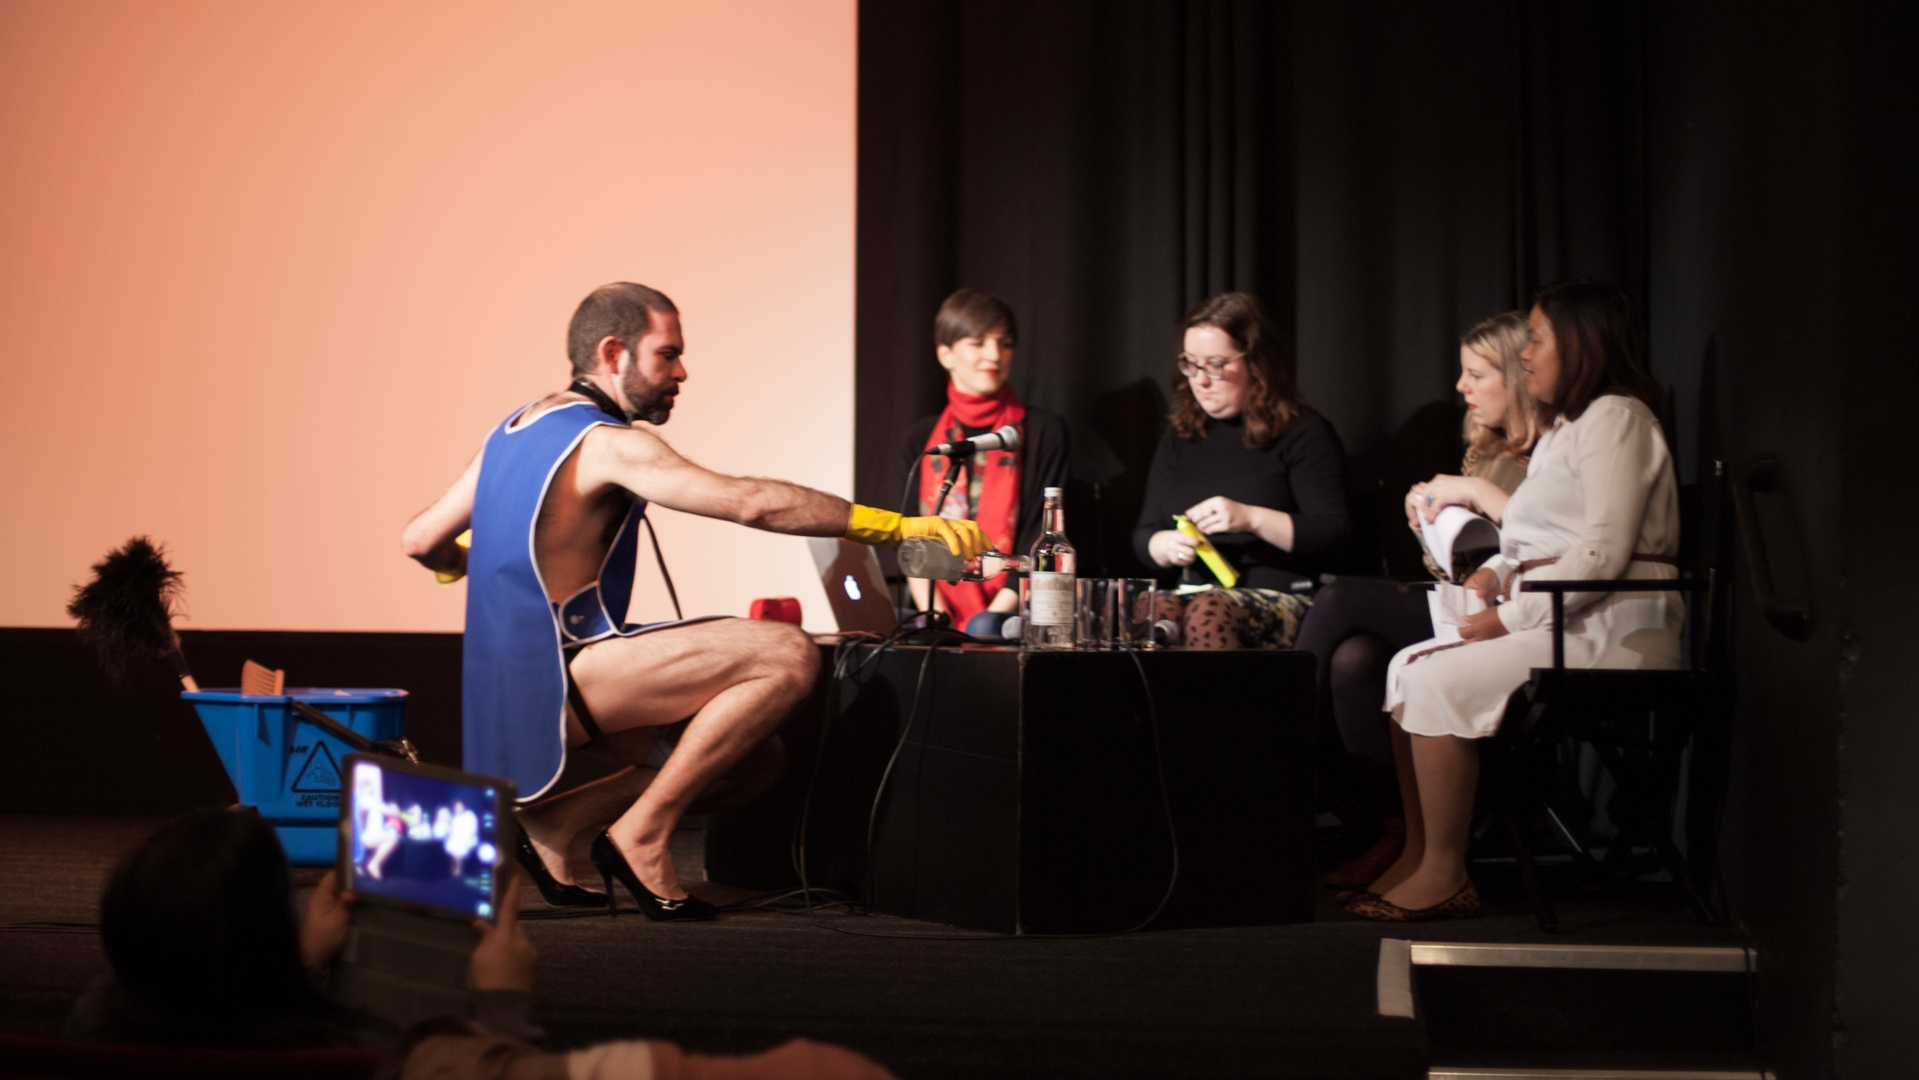 Pablo Pakula, Emma Dowling, Dawn Foster, Larne Abse Gogarty, and Marissa Begonia as part of On Social Reproduction, ICA, London, as part of Now You Can Go. Photo Christian Luebbert.